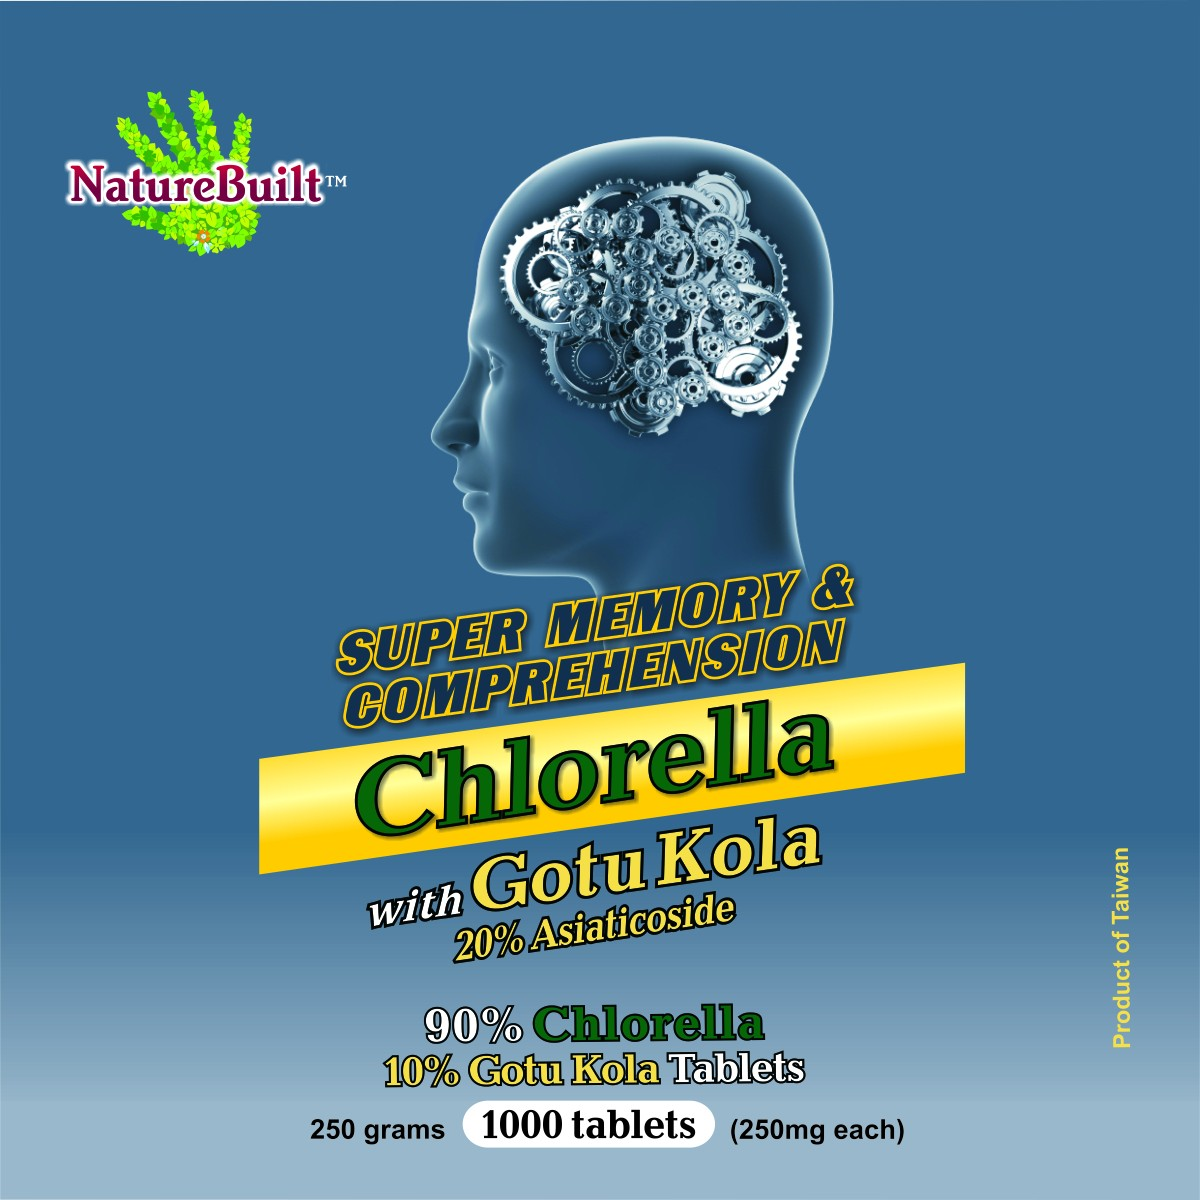 90% Chlorella 10% Gotu Kola Tablets